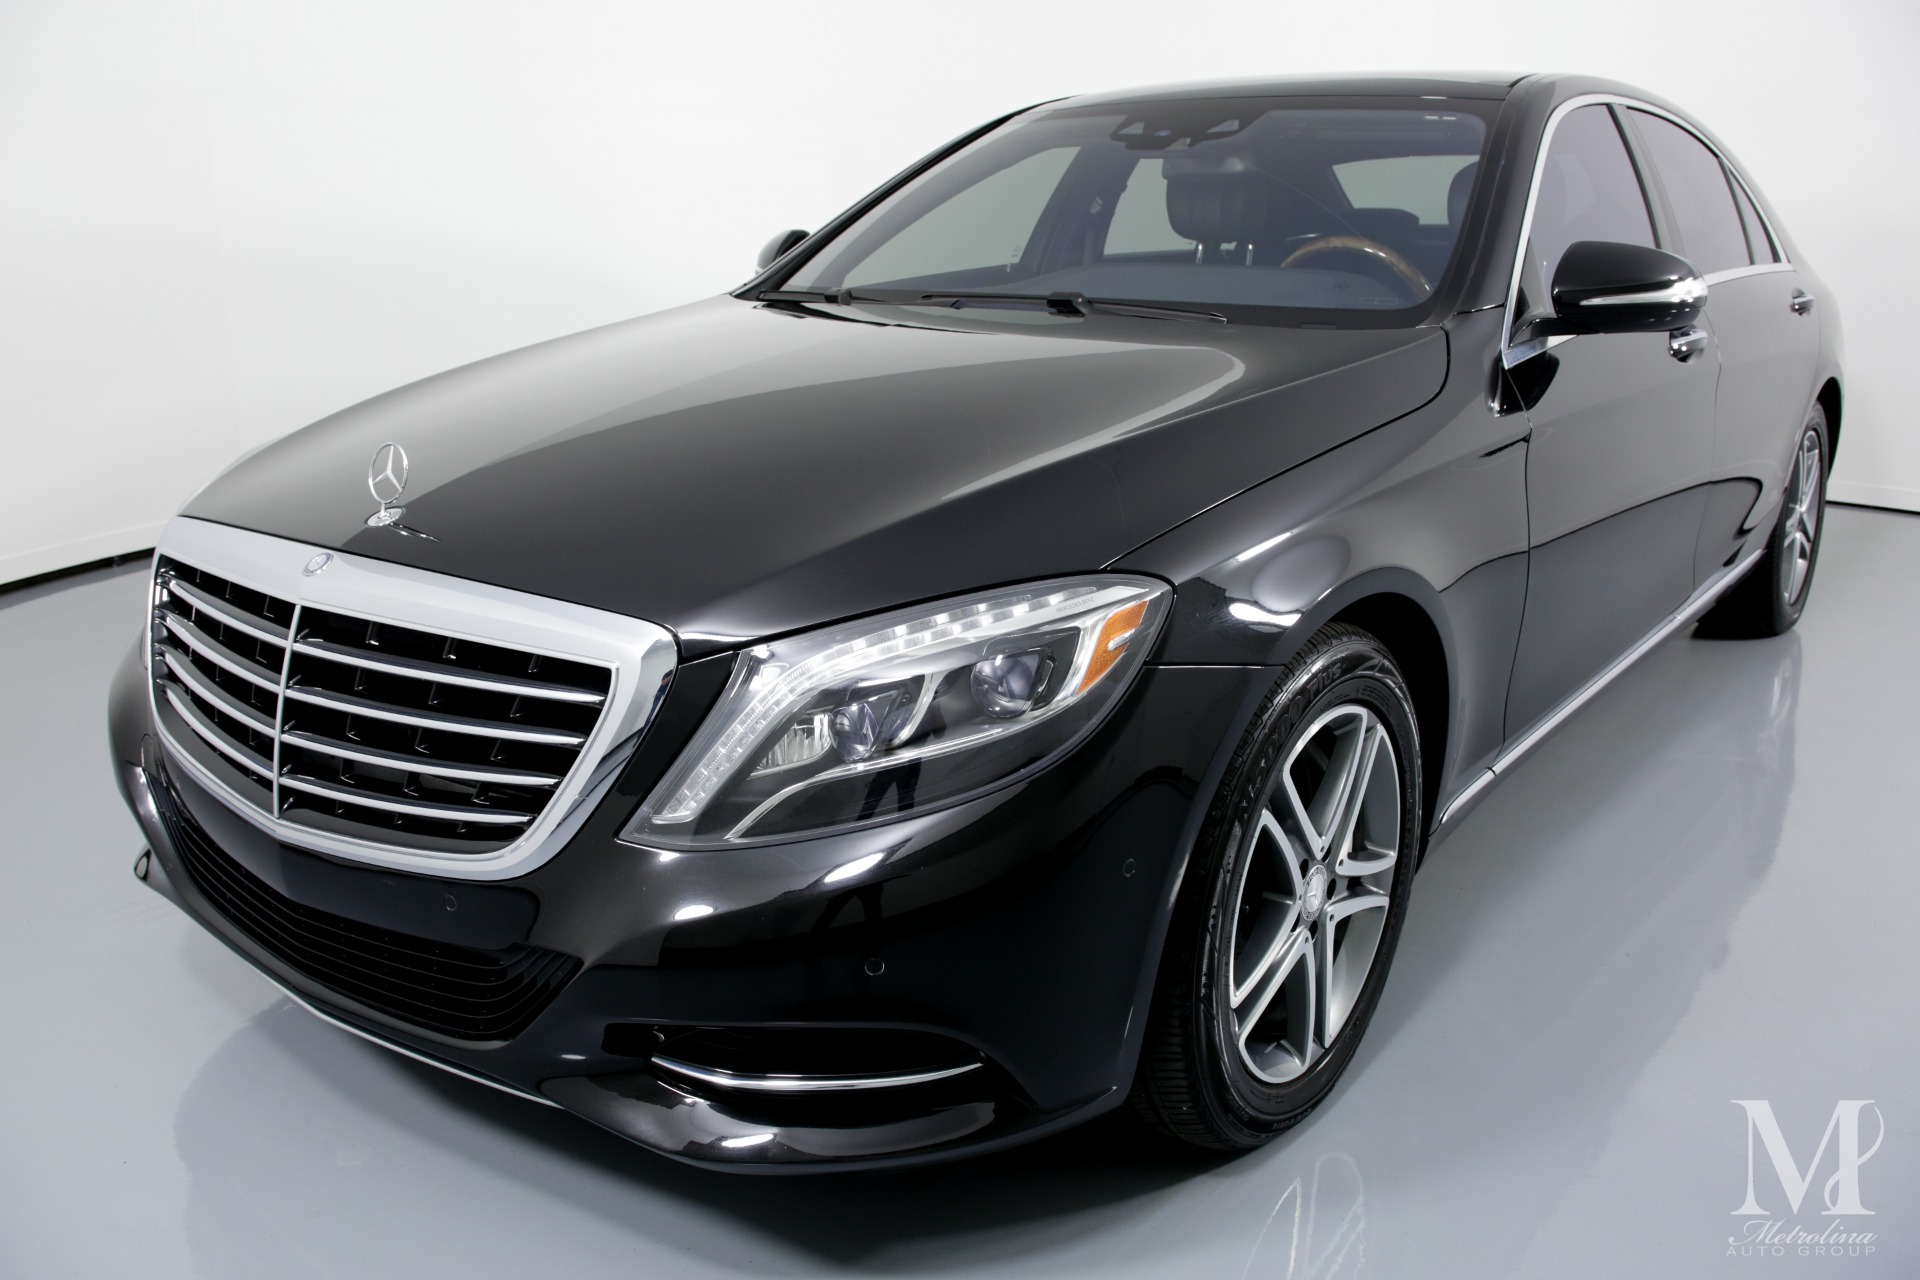 Used 2016 Mercedes-Benz S-Class S 550 4dr Sedan for sale $51,456 at Metrolina Auto Group in Charlotte NC 28217 - 4